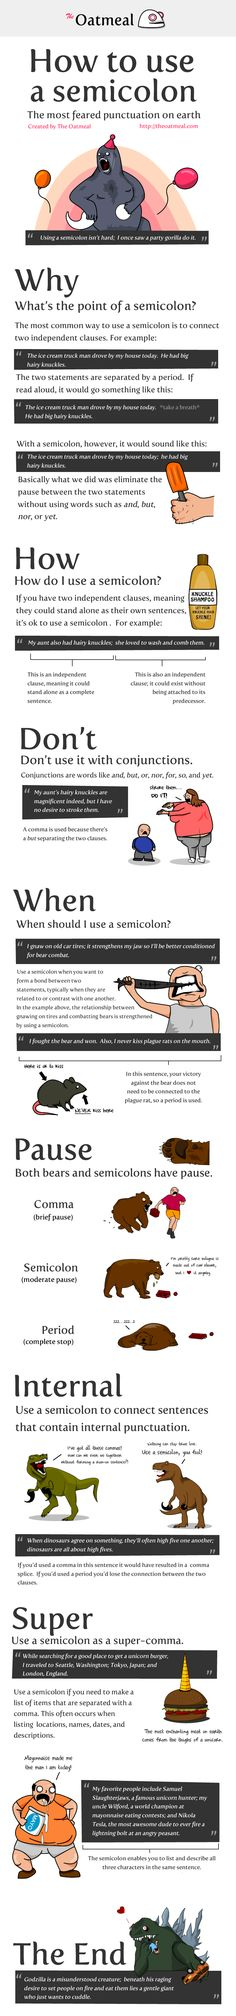 How to Use a Semicolon  I thought infographics were supposed to make things easier to understand.  This one just proved to me that we should eliminate semicolons all together.   Death to the semicolon!